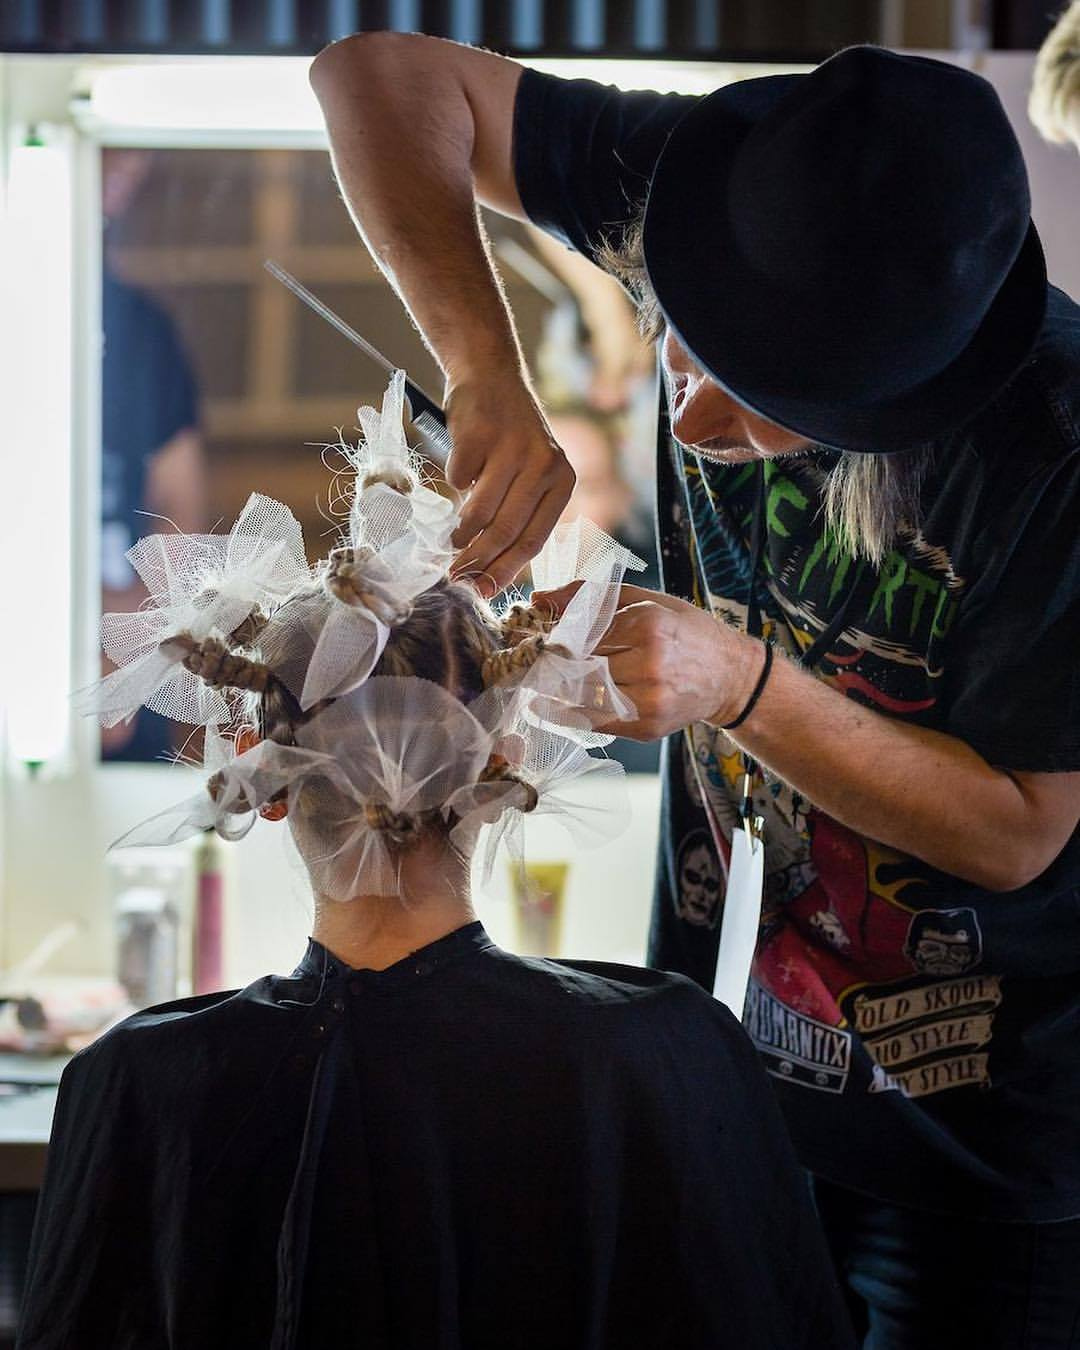 A hairdresser is working on customer to create a beautiful hair design with ribbons.